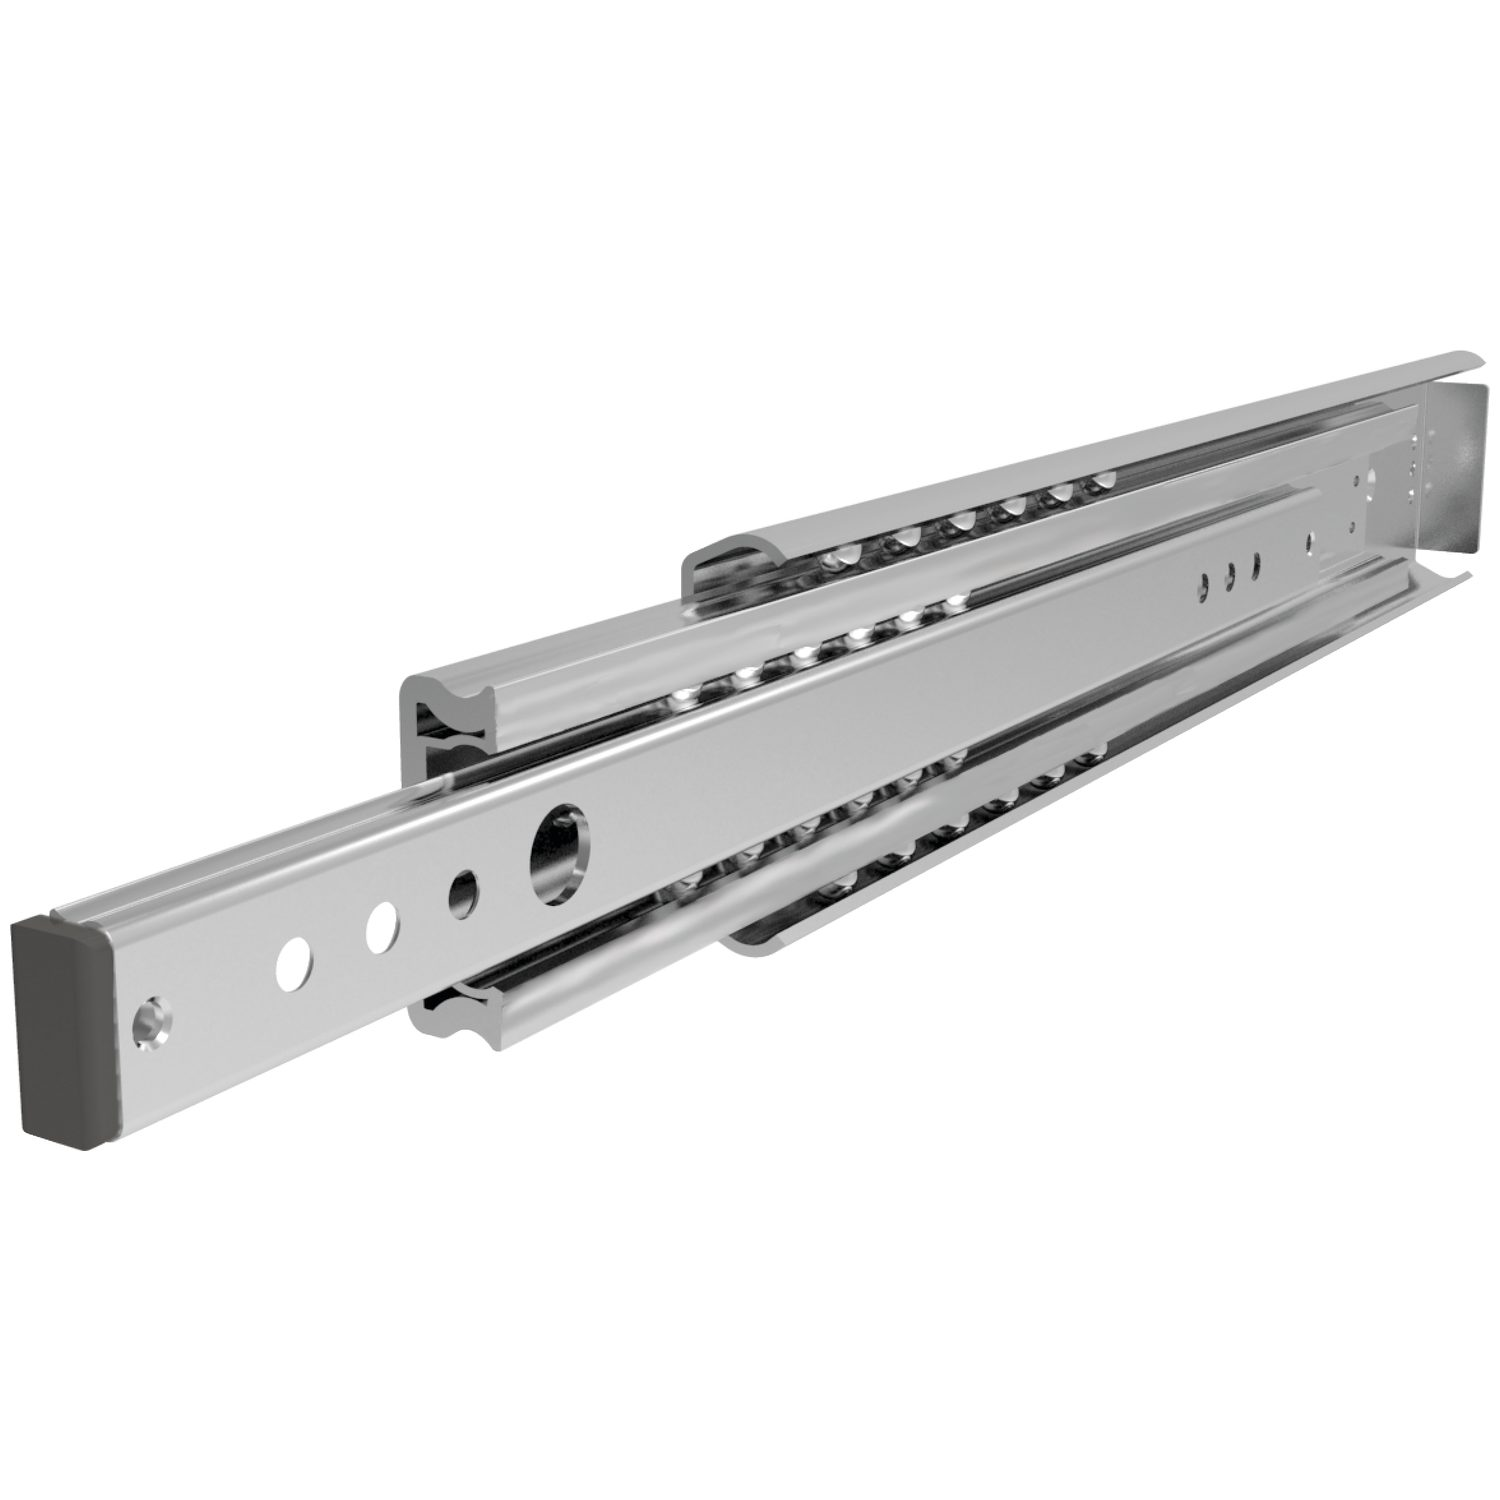 L2013 - Fully Telescopic Drawer Slide